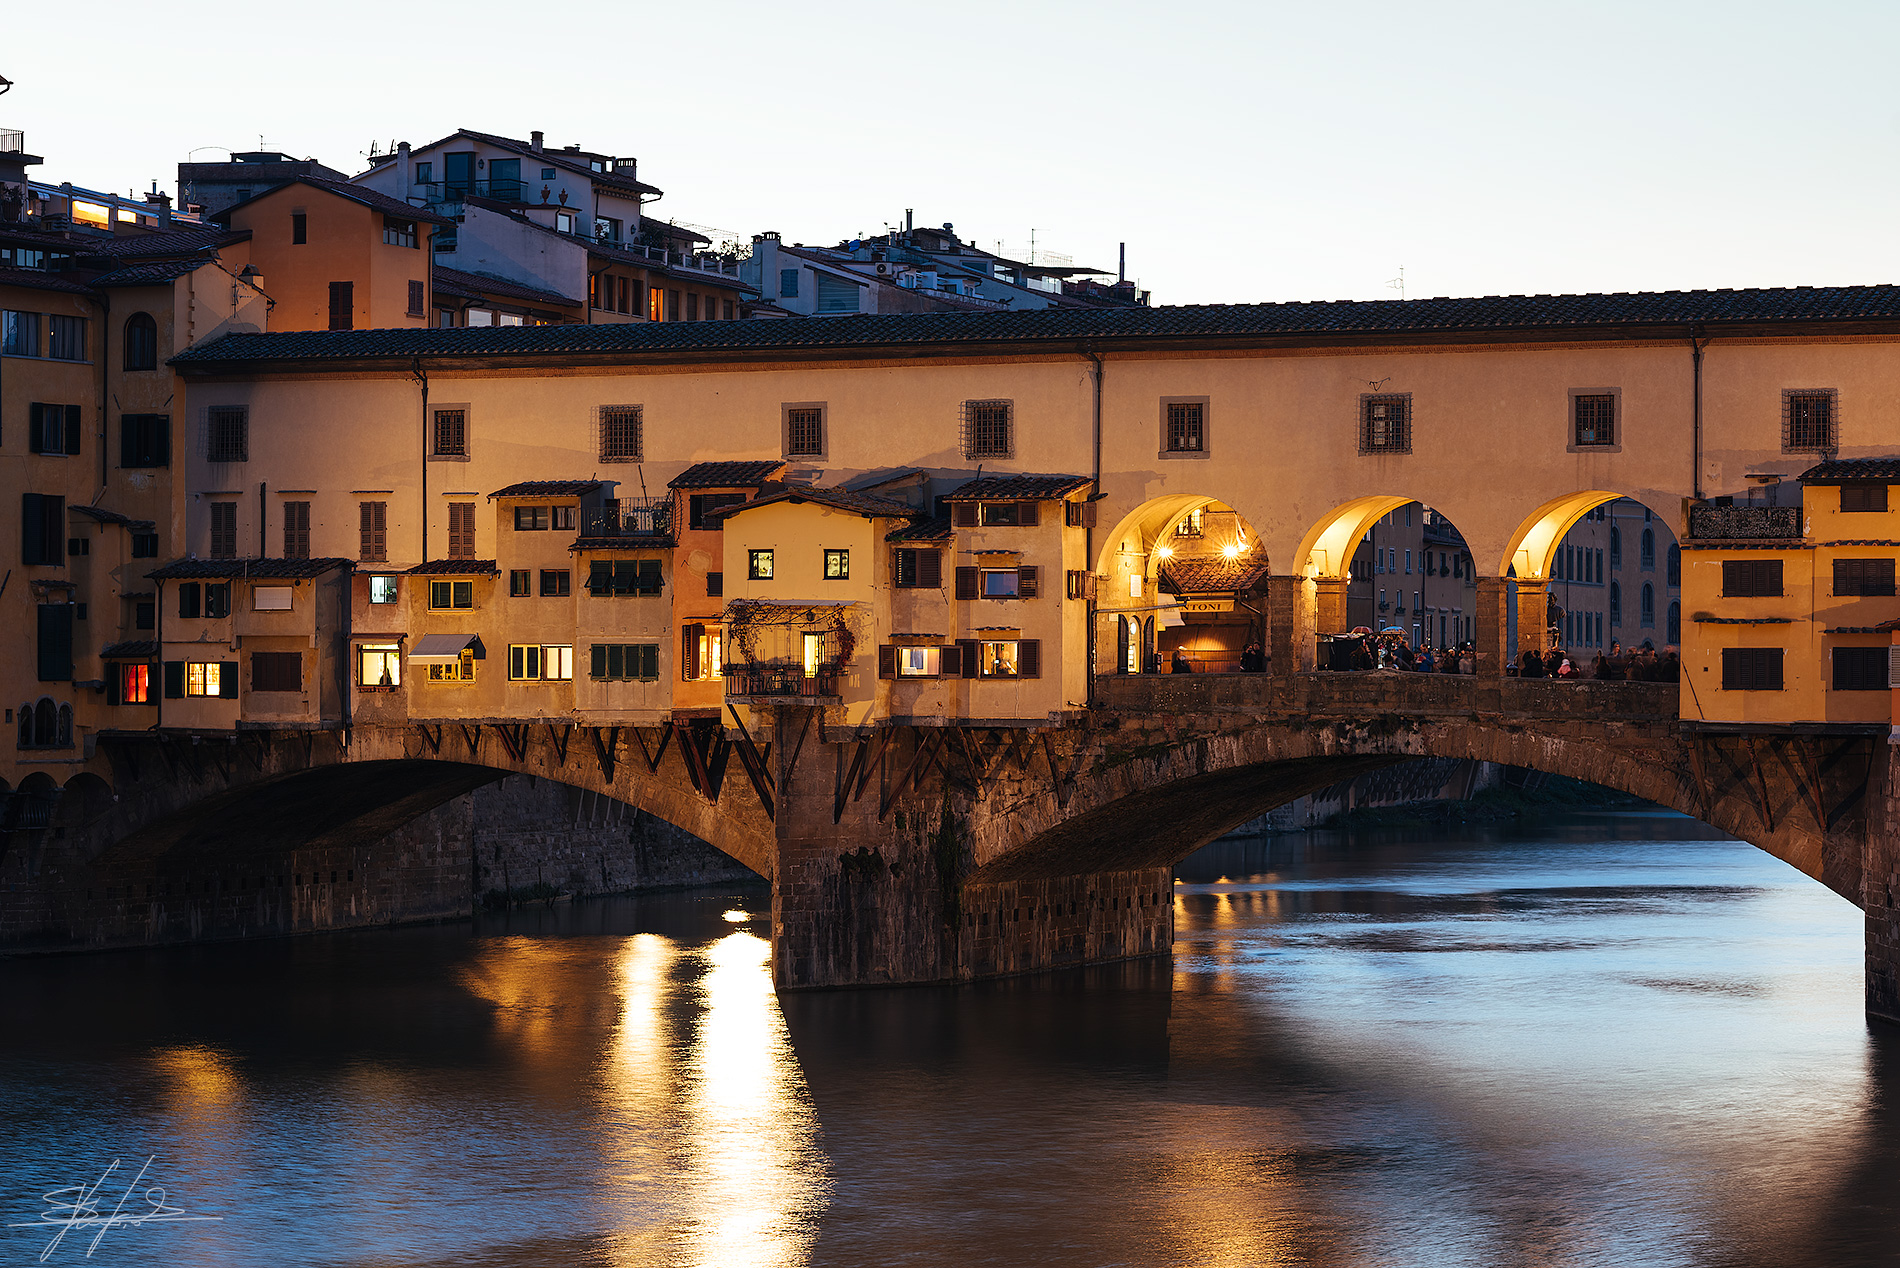 The lights of Ponte Vecchio